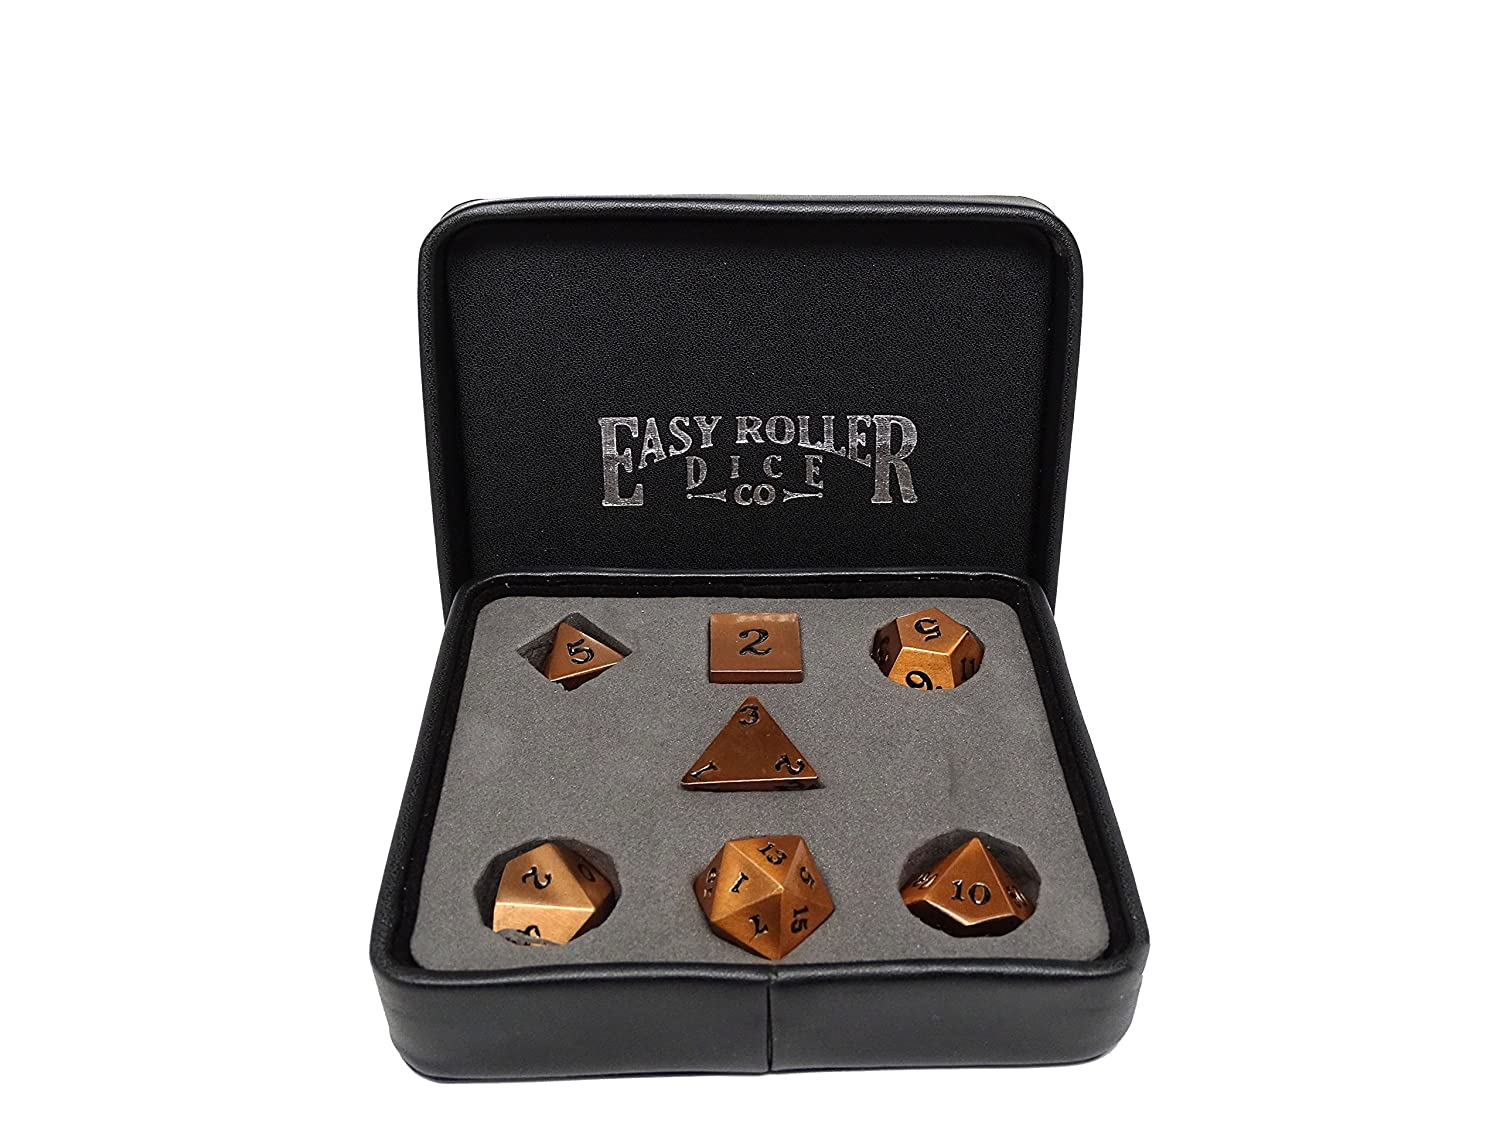 Easy Roller Dice Co. Legendary Copper Metal Polyhedral Dice Set with Black Signature Font 7 Piece Professional Edition FREE Display Case Hand Checked Quality Control   B07DLXR4D4